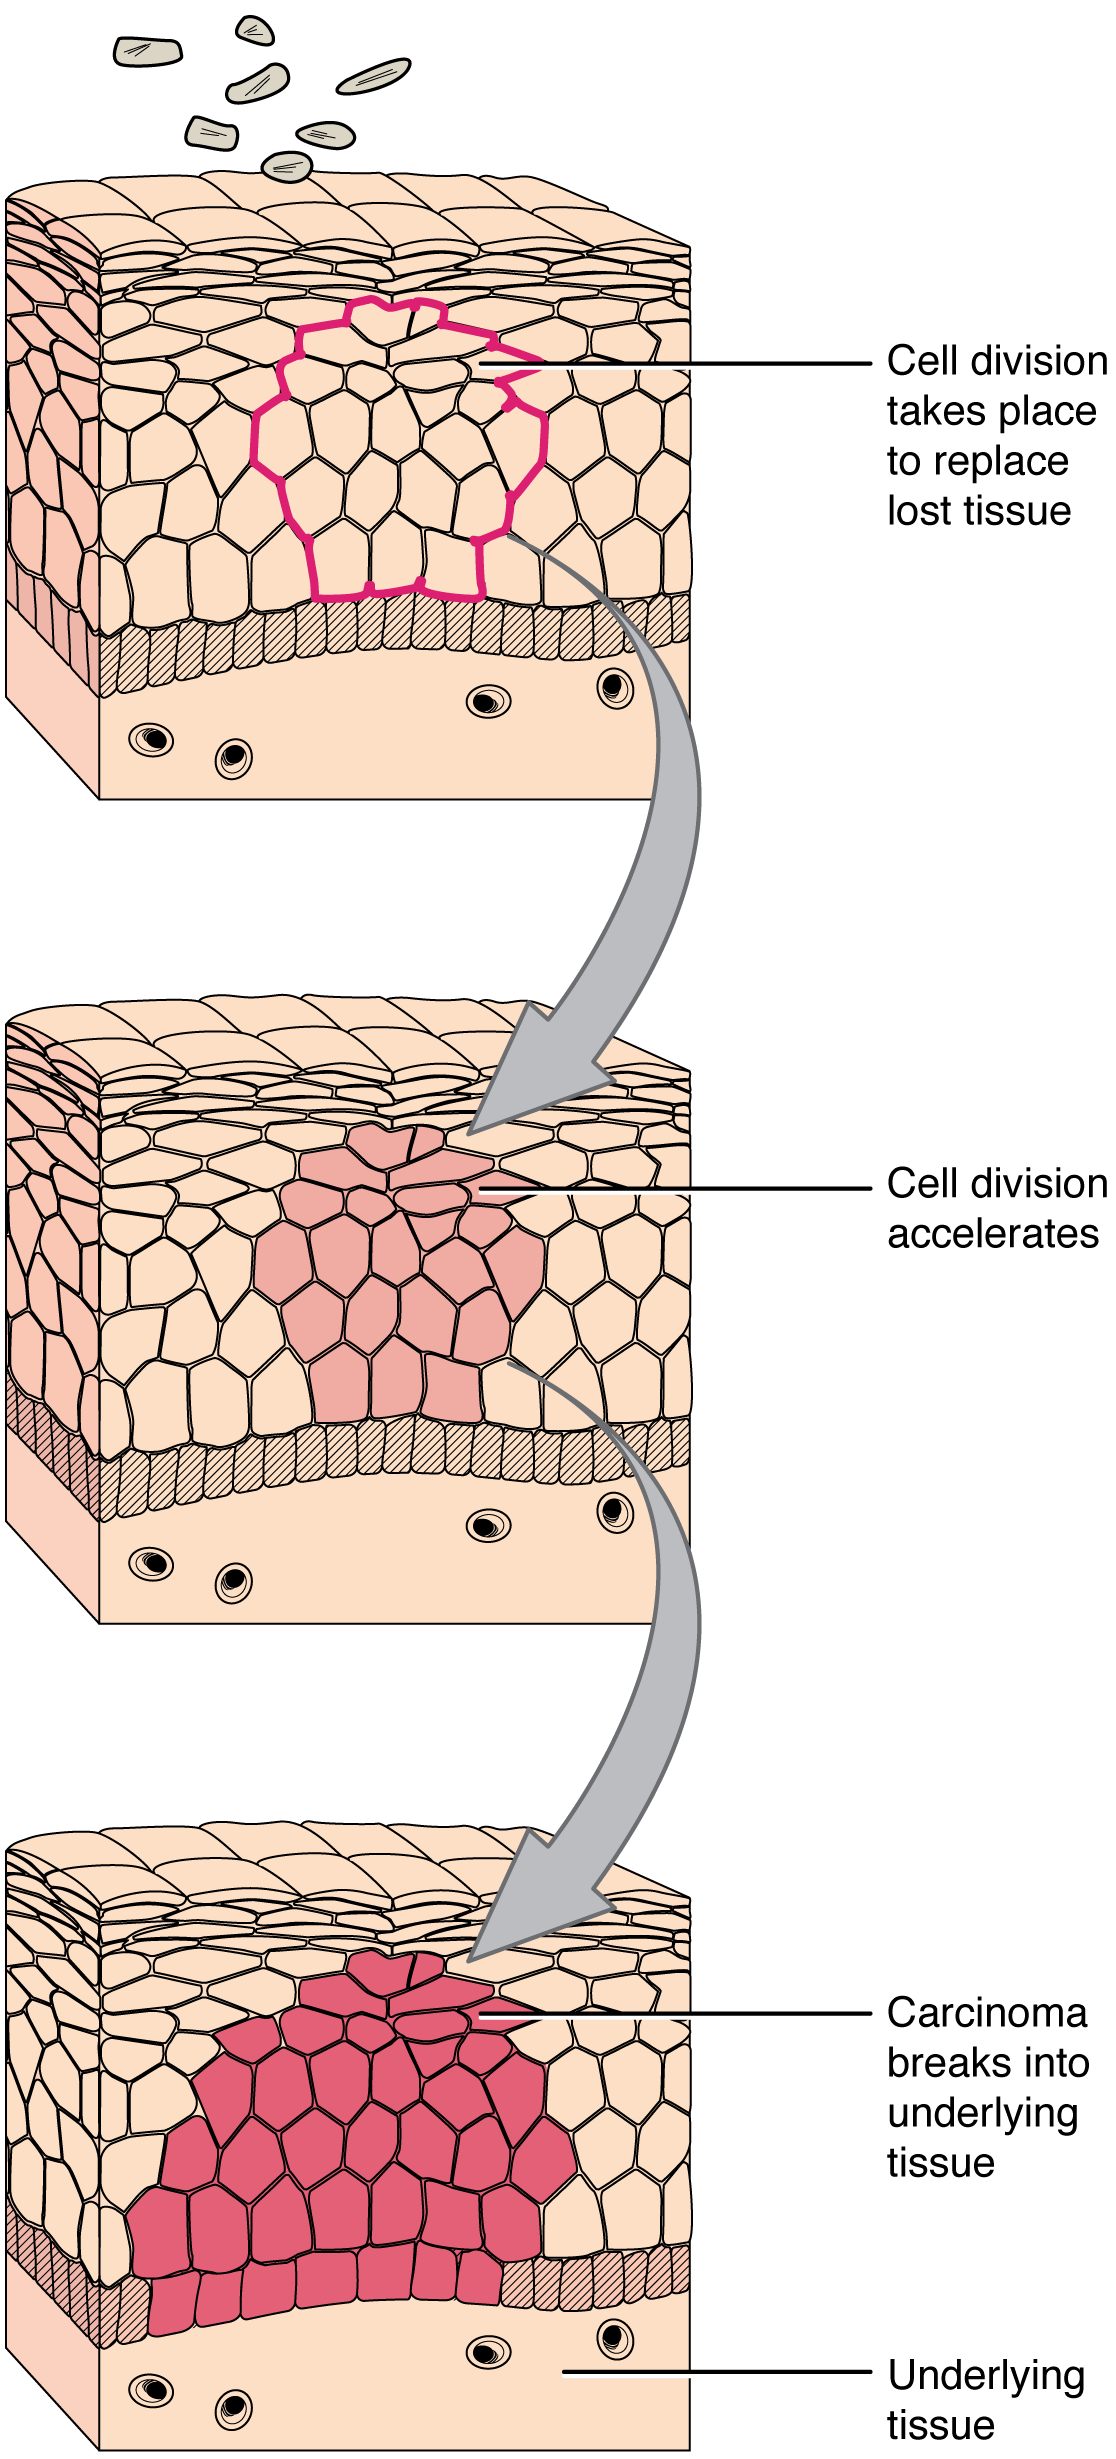 This series of three diagrams shows the development of cancer in epithelial cells. In all three diagrams, layers of epithelial tissue cover a generic underlying tissue. In the first diagram, an injury kills a section of the epithelial cells. In the second image, new epithelial cells have completely filled in the wounded area. However, cell division is still accelerating. In the lowest diagram, the epithelial cells have continued to divide and have now expanded beyond the original wound area. The group of dividing cells, now called a carcinoma, breaks into the layer of underlying tissue.